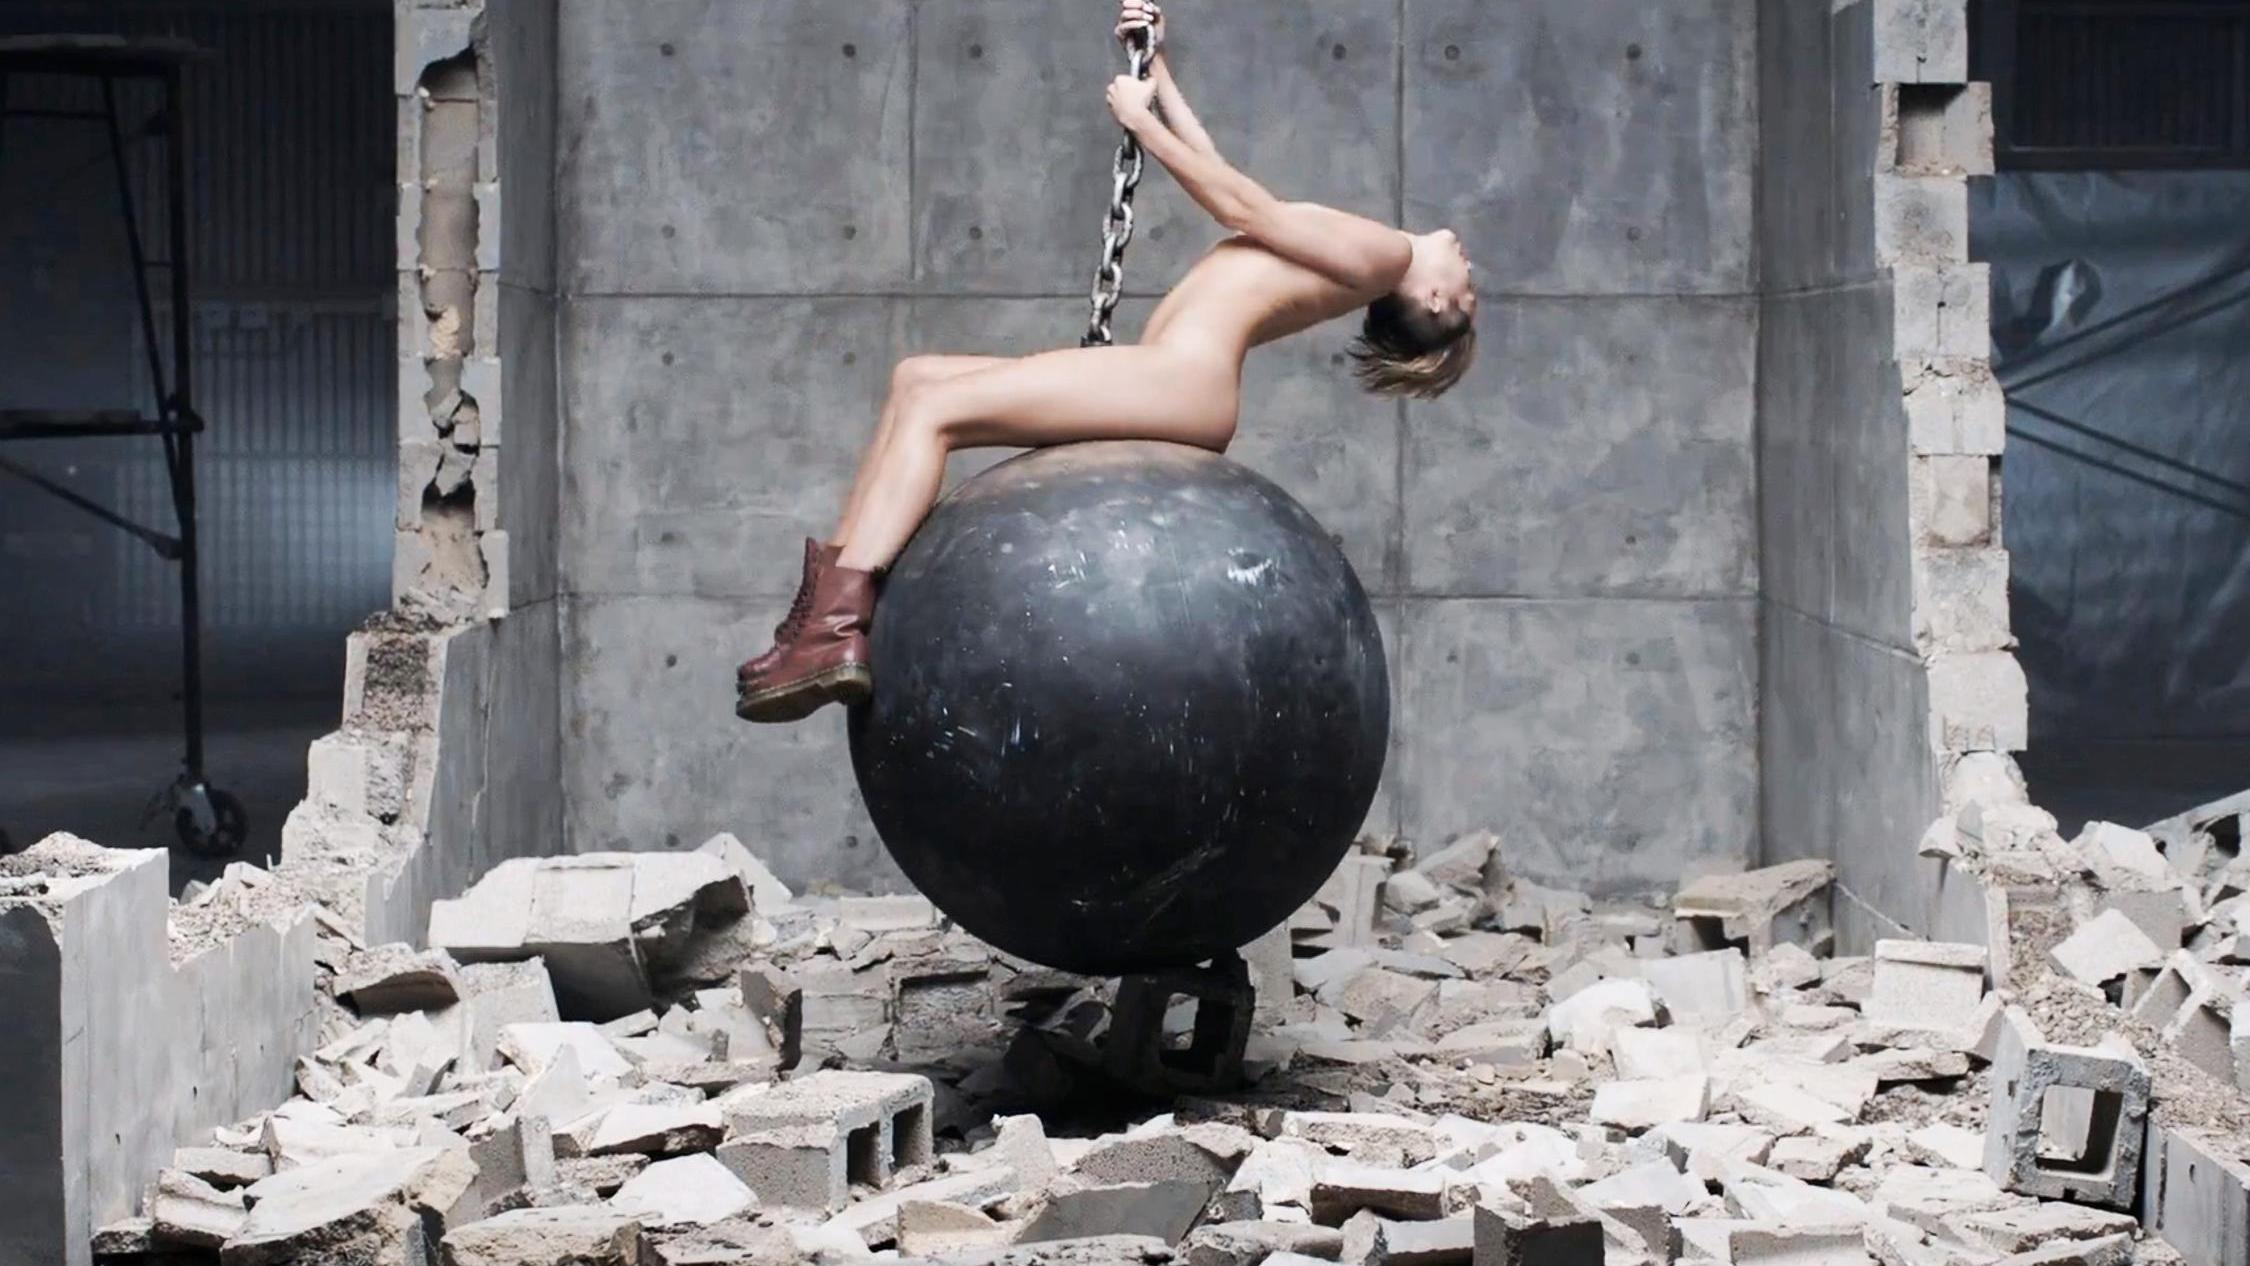 Miley Cyrus in Wrecking Ball, directed by Terry Richardson, 2013